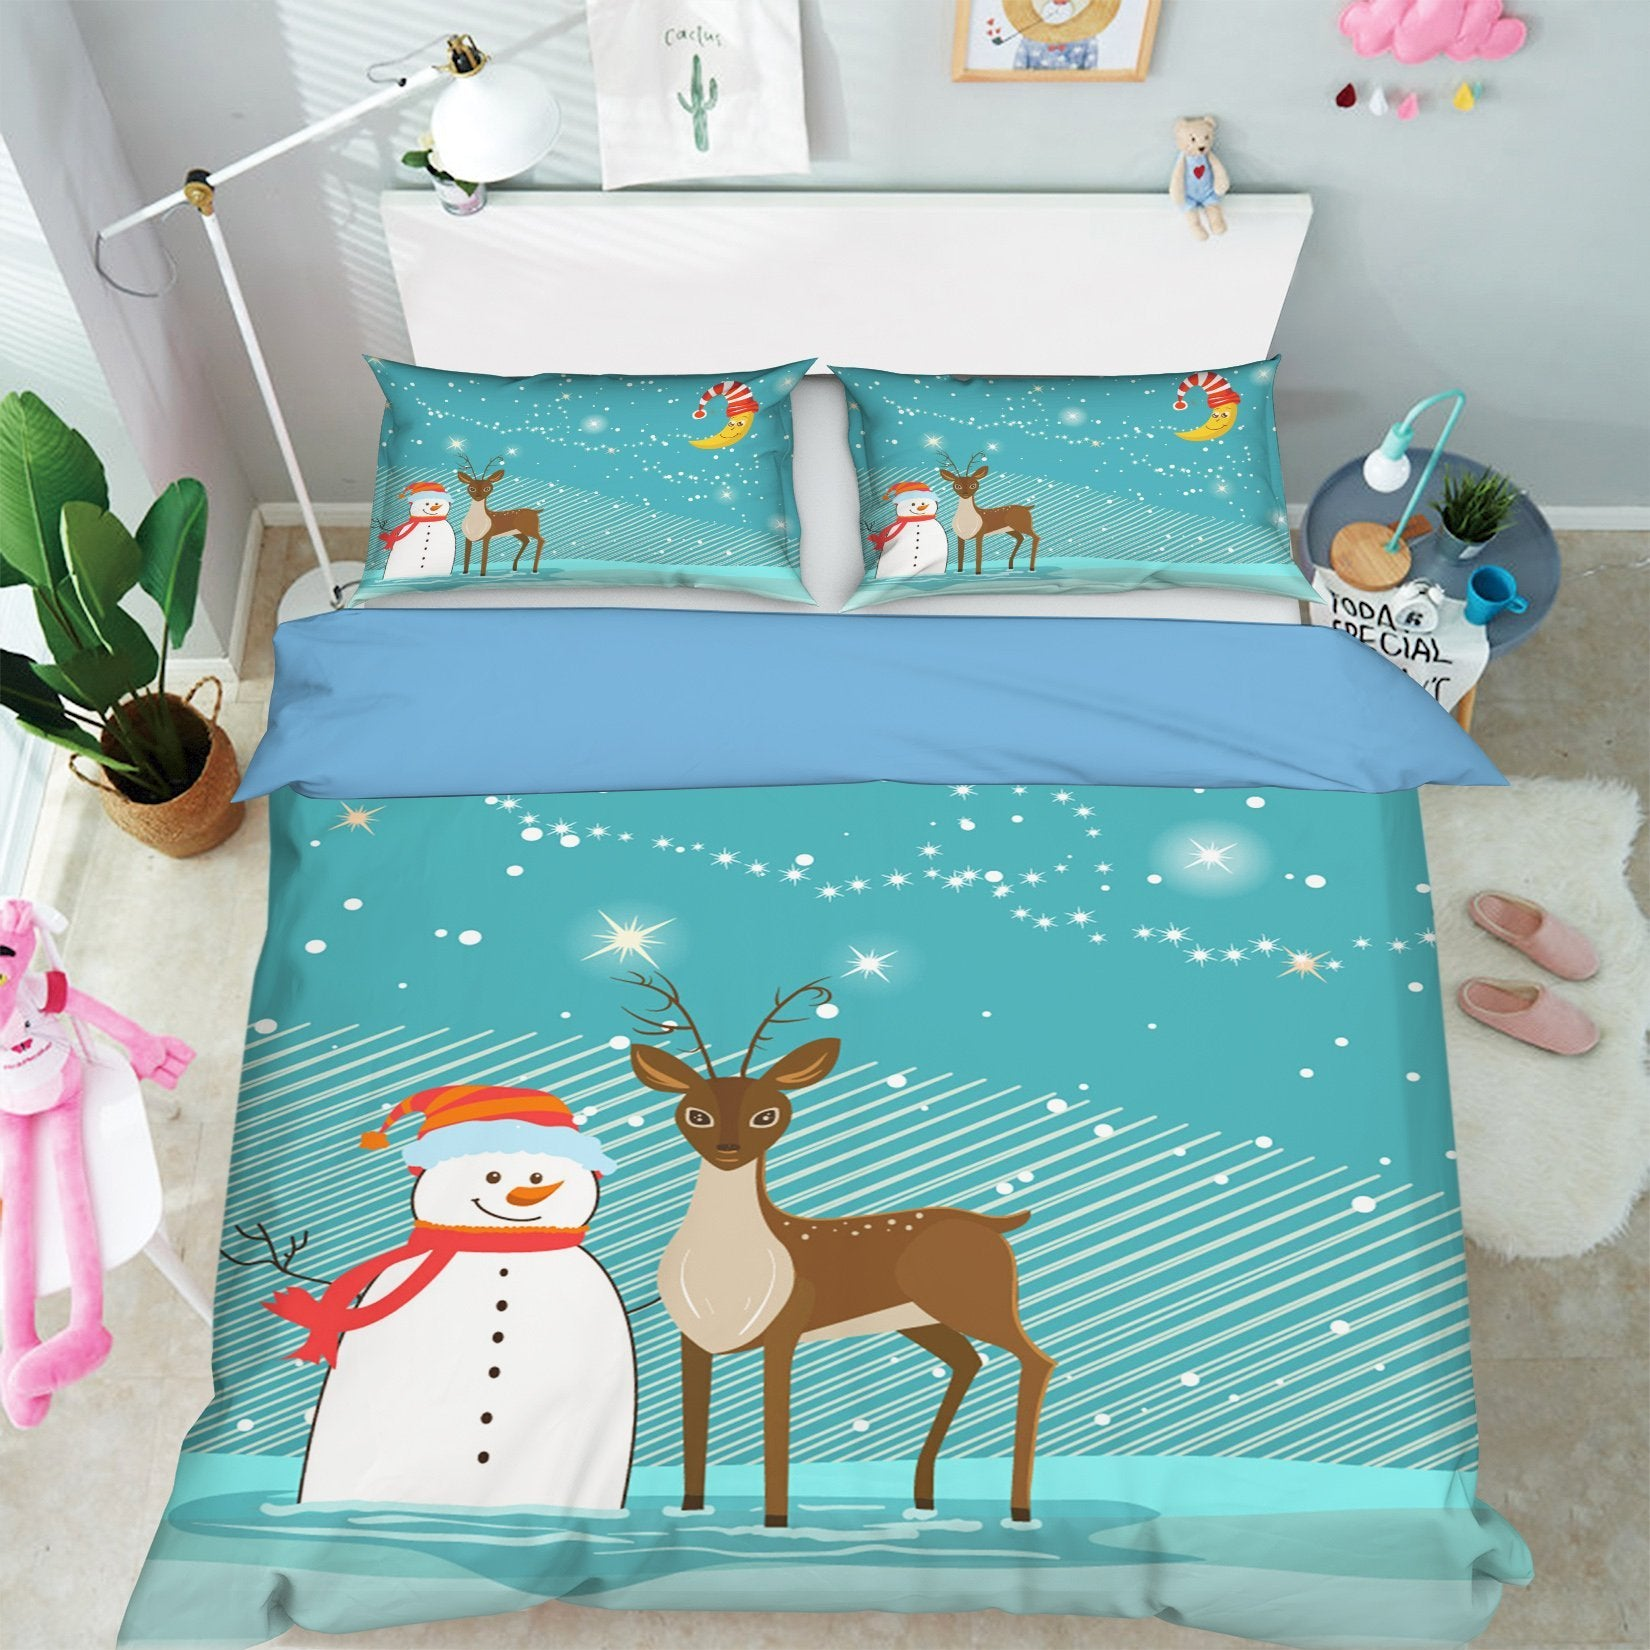 3D Christmas Snowman Deer Staring 30 Bed Pillowcases Quilt Quiet Covers AJ Creativity Home